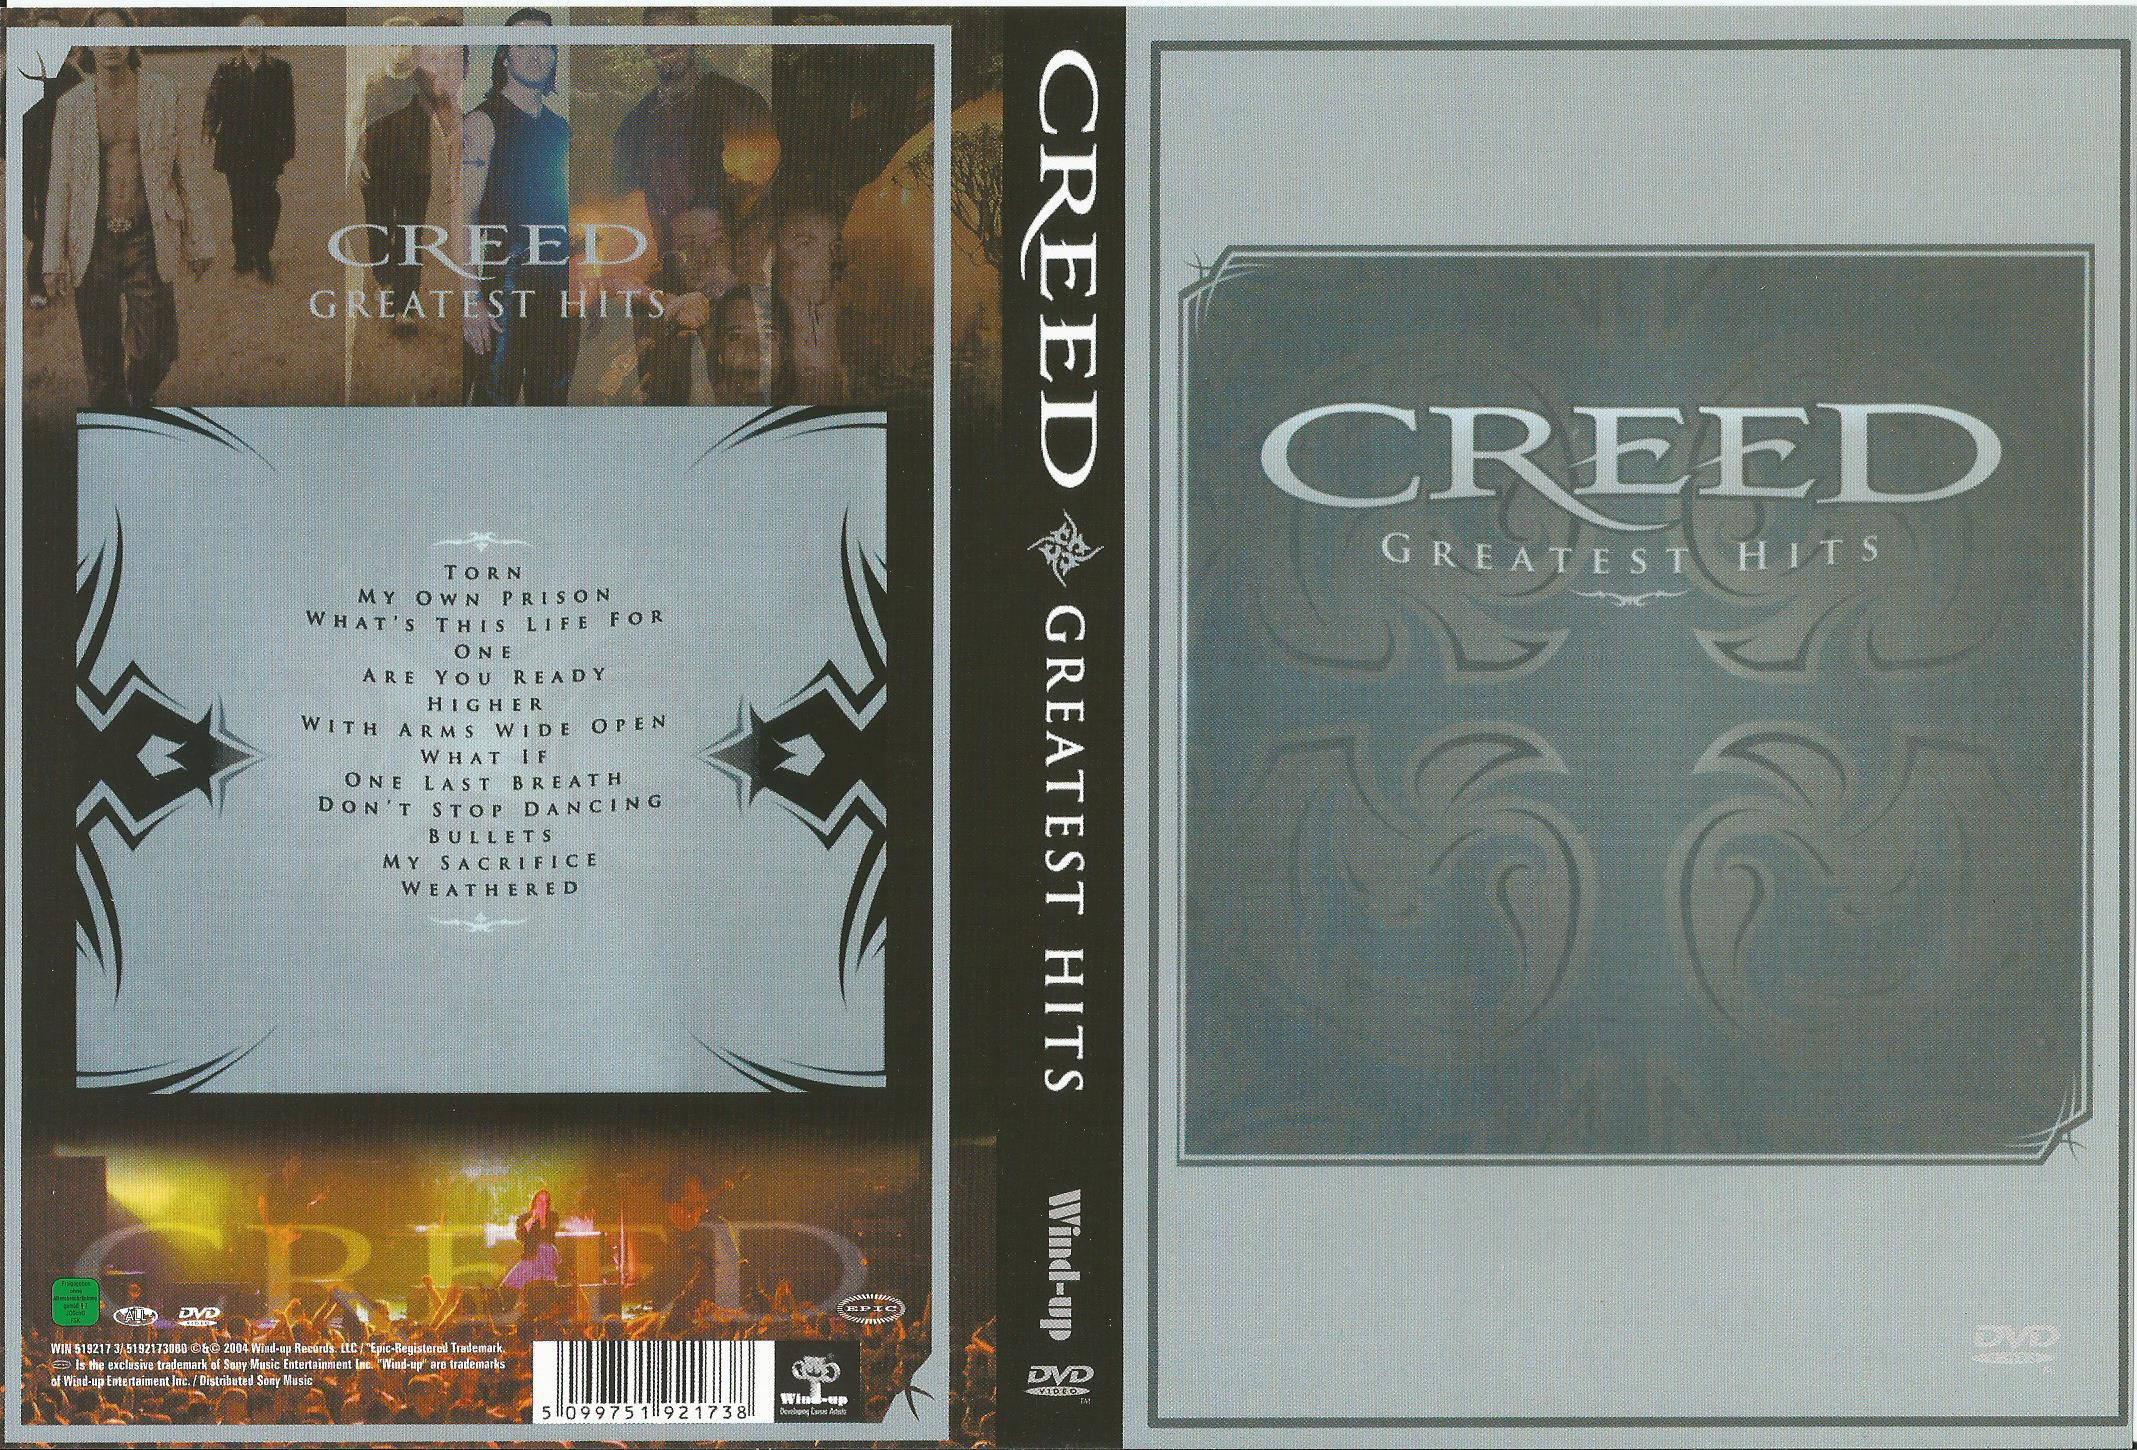 Greatest hits (all regions) by Creed, DVD with apexmusic